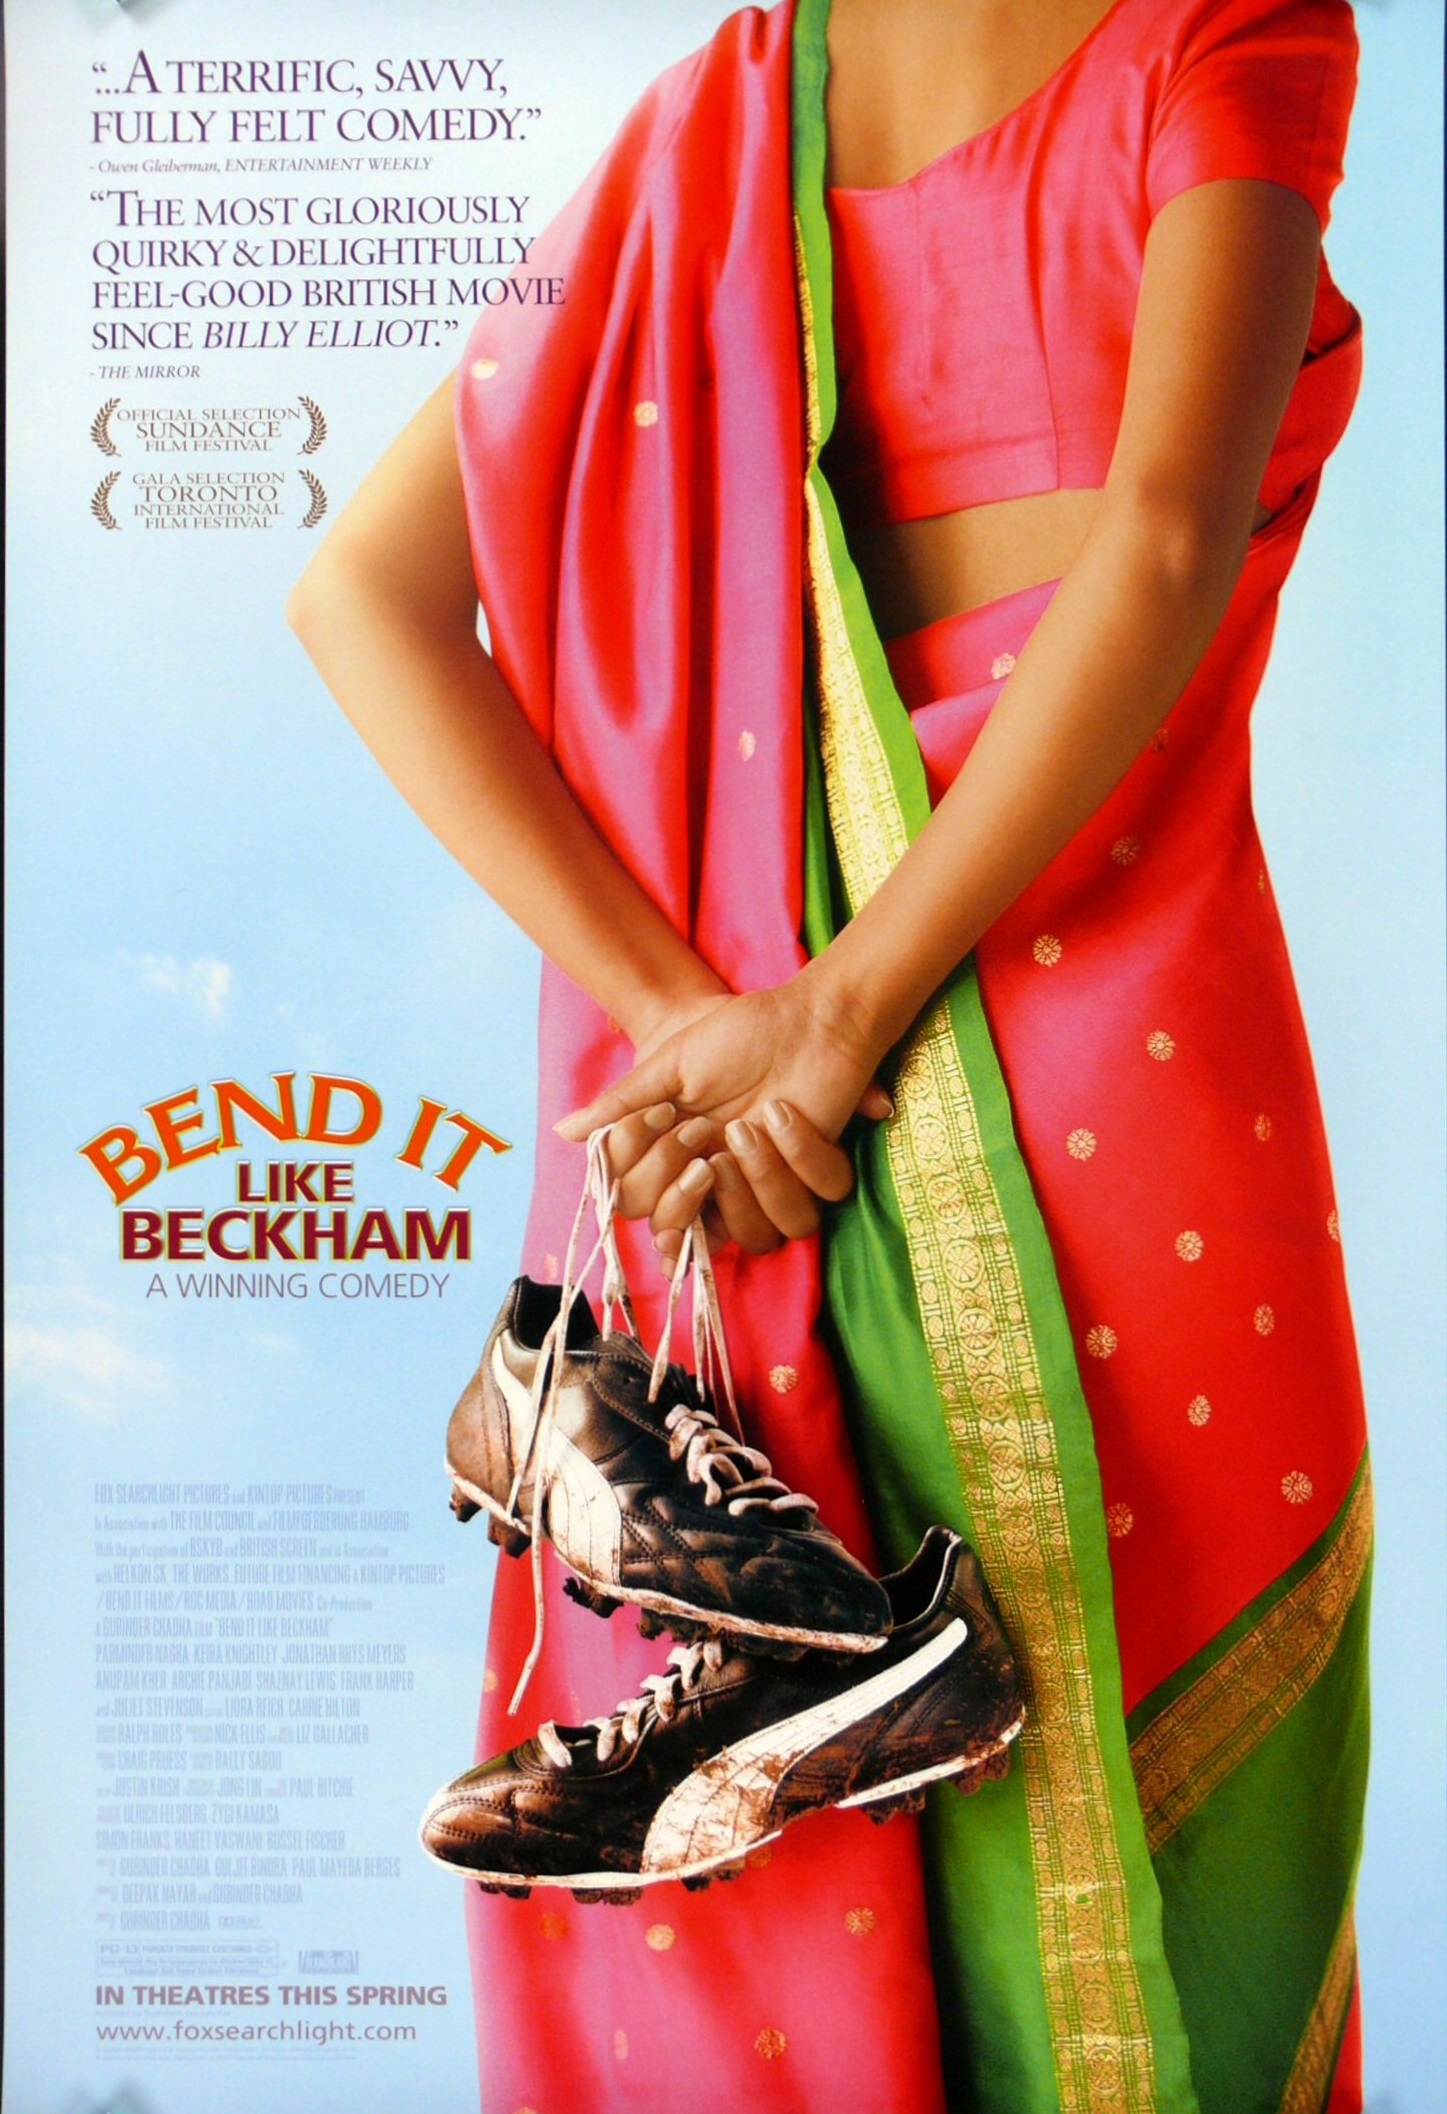 the issue of feminine masculinity in bend it like beckham a film by gurinder chadha Lounge for 21 jan 2012  british-indian director gurinder chadha's 2002 film, bend it like beckham it's not the only time the film is mentioned as an.